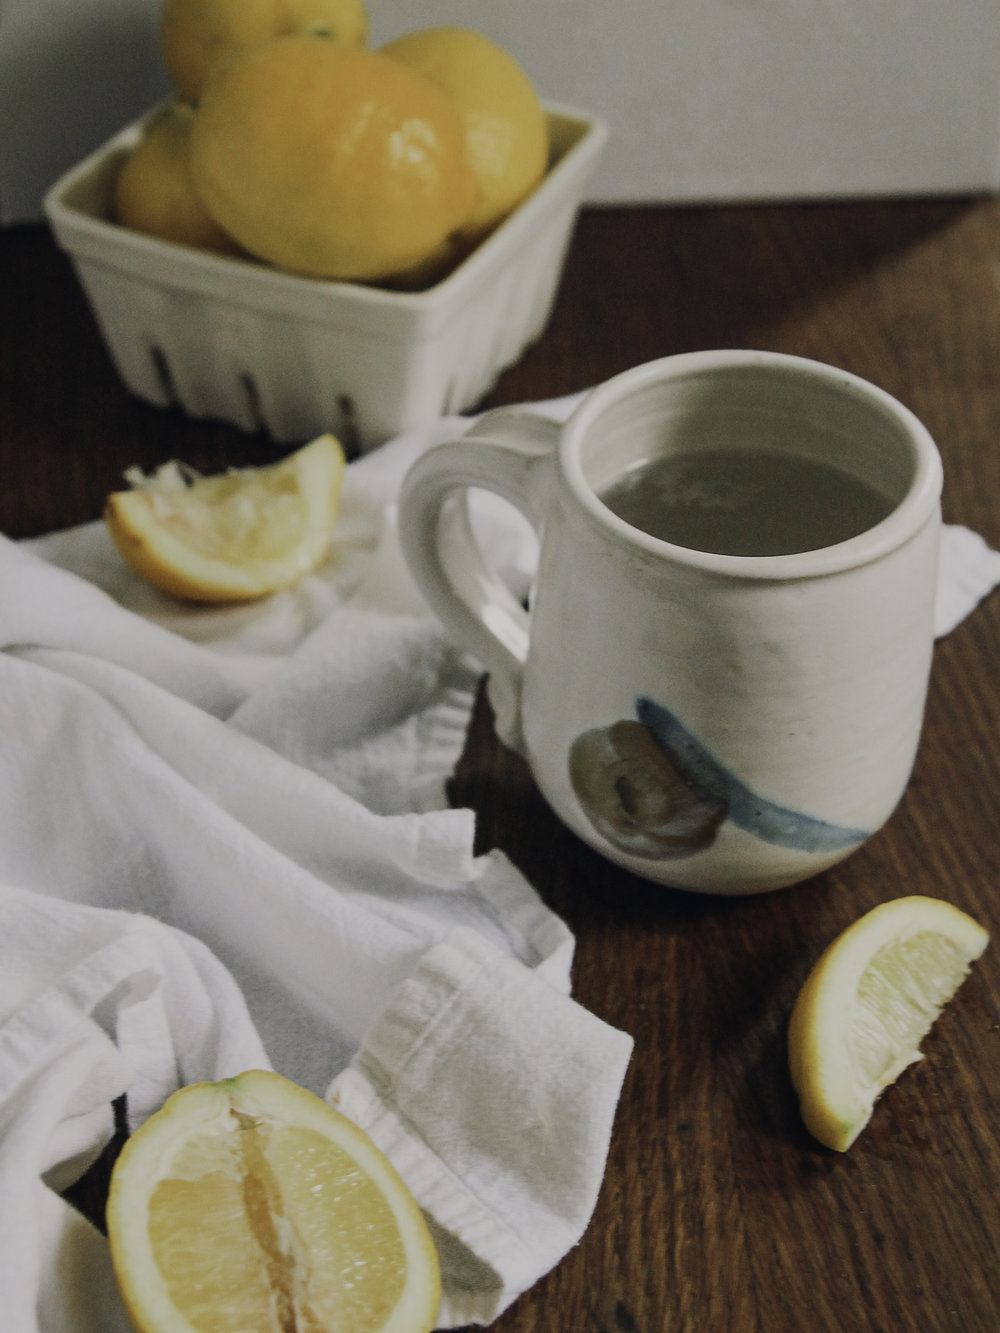 kicking caffeine | warm lemon water trick | via: chatham st. house